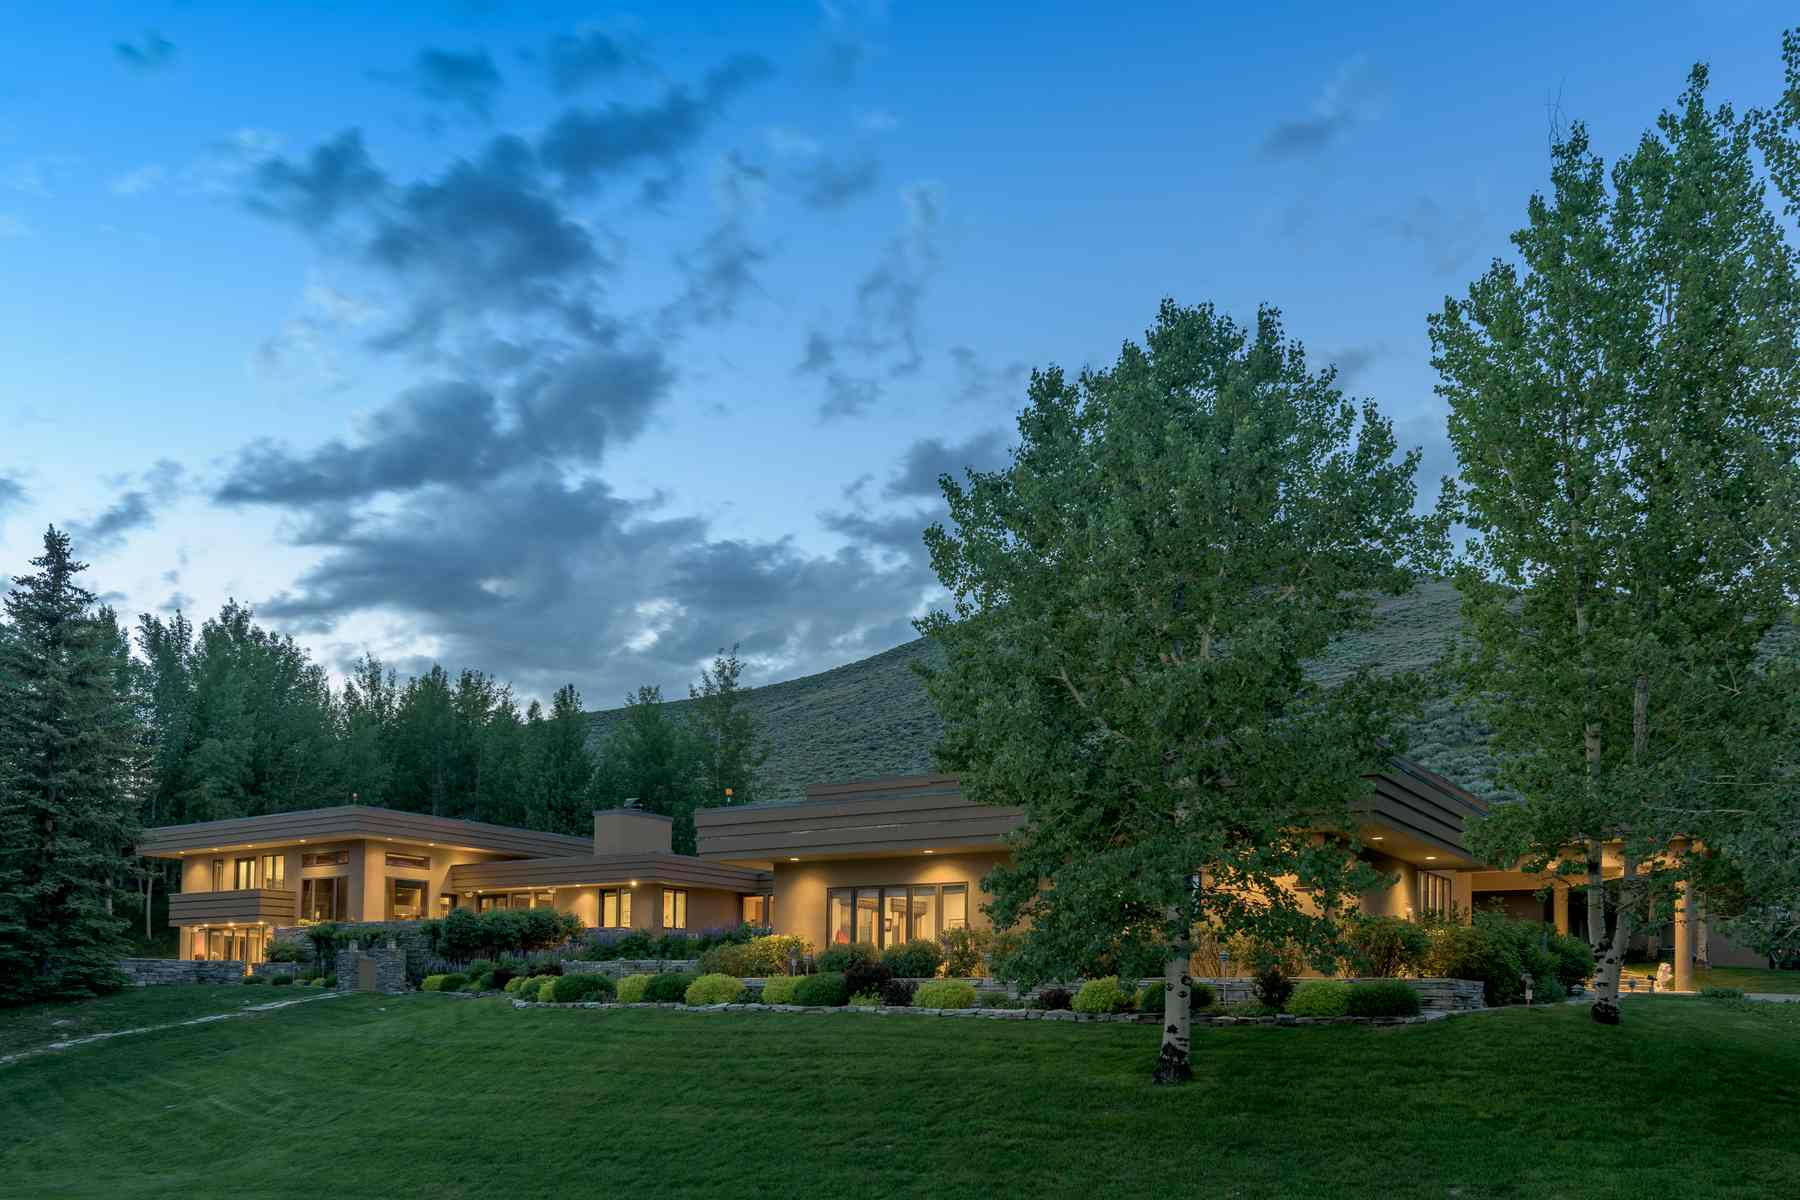 Casa Unifamiliar por un Venta en Spectacular Elevated Setting 455 N. Bigwood Drive Ketchum, Idaho 83340 Estados Unidos